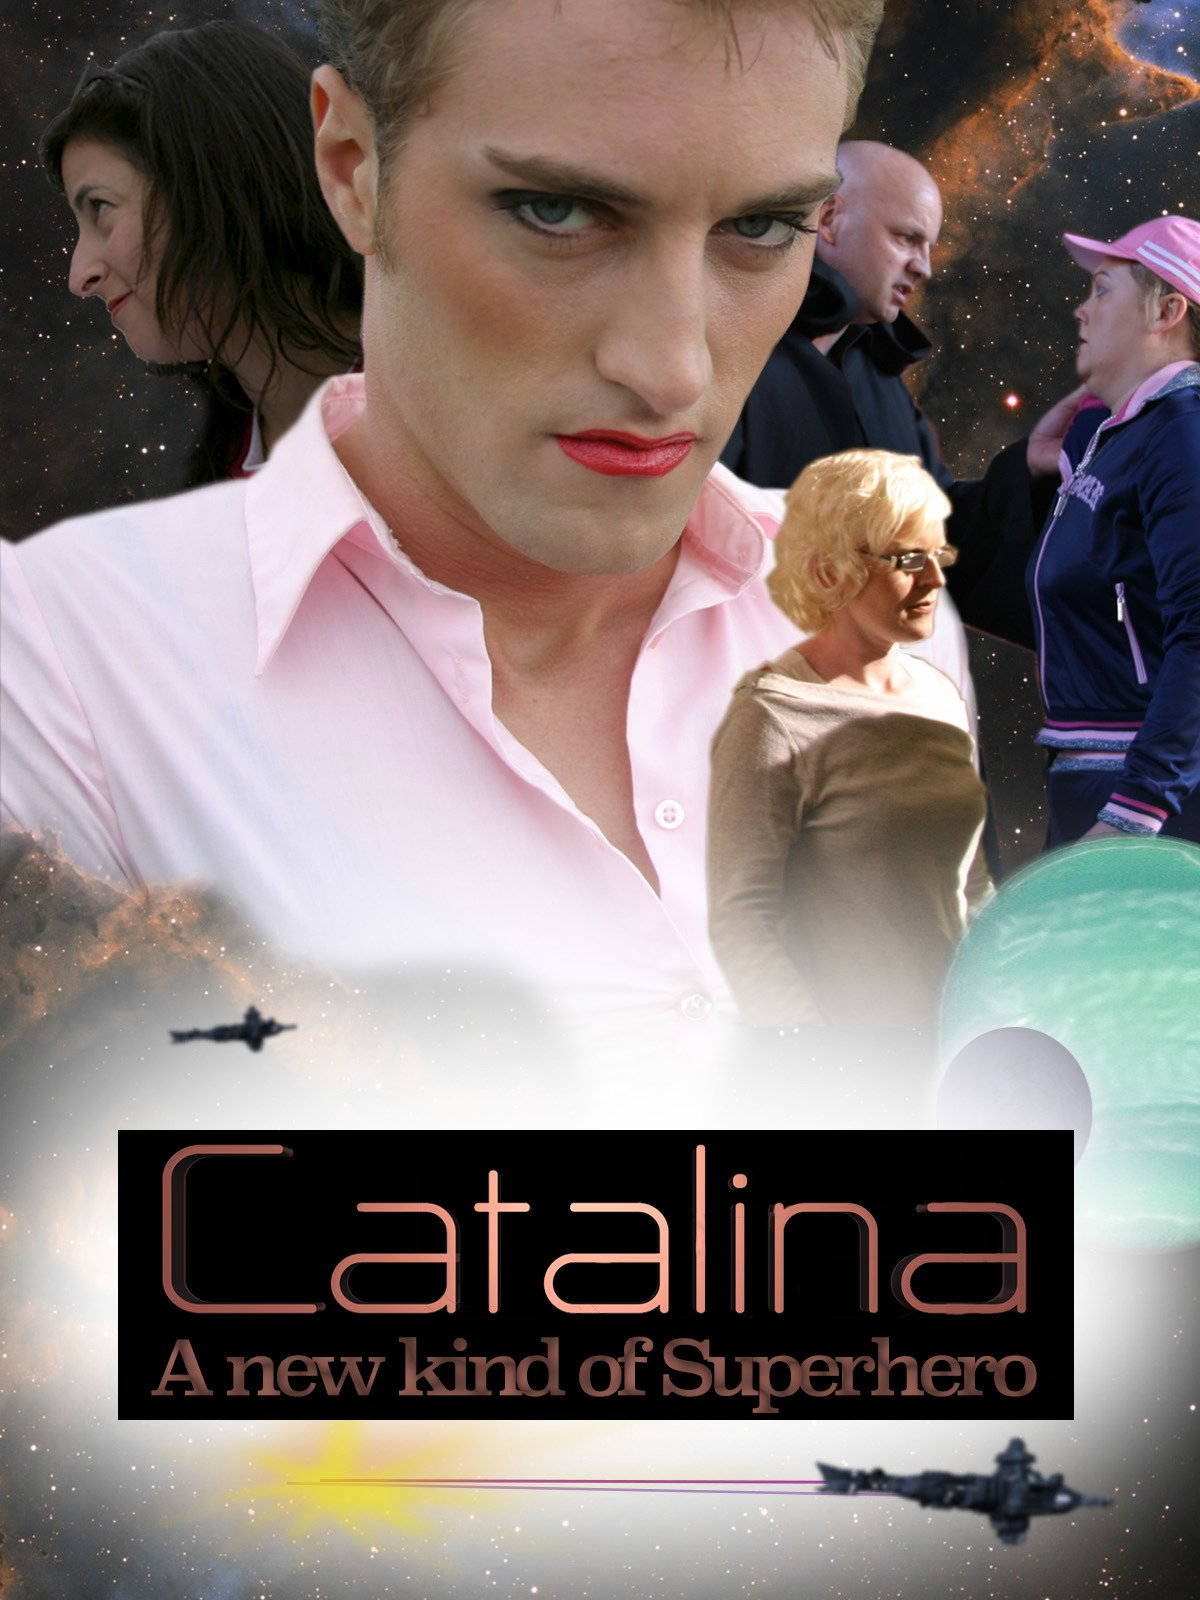 Catalina: A New Kind of Superhero